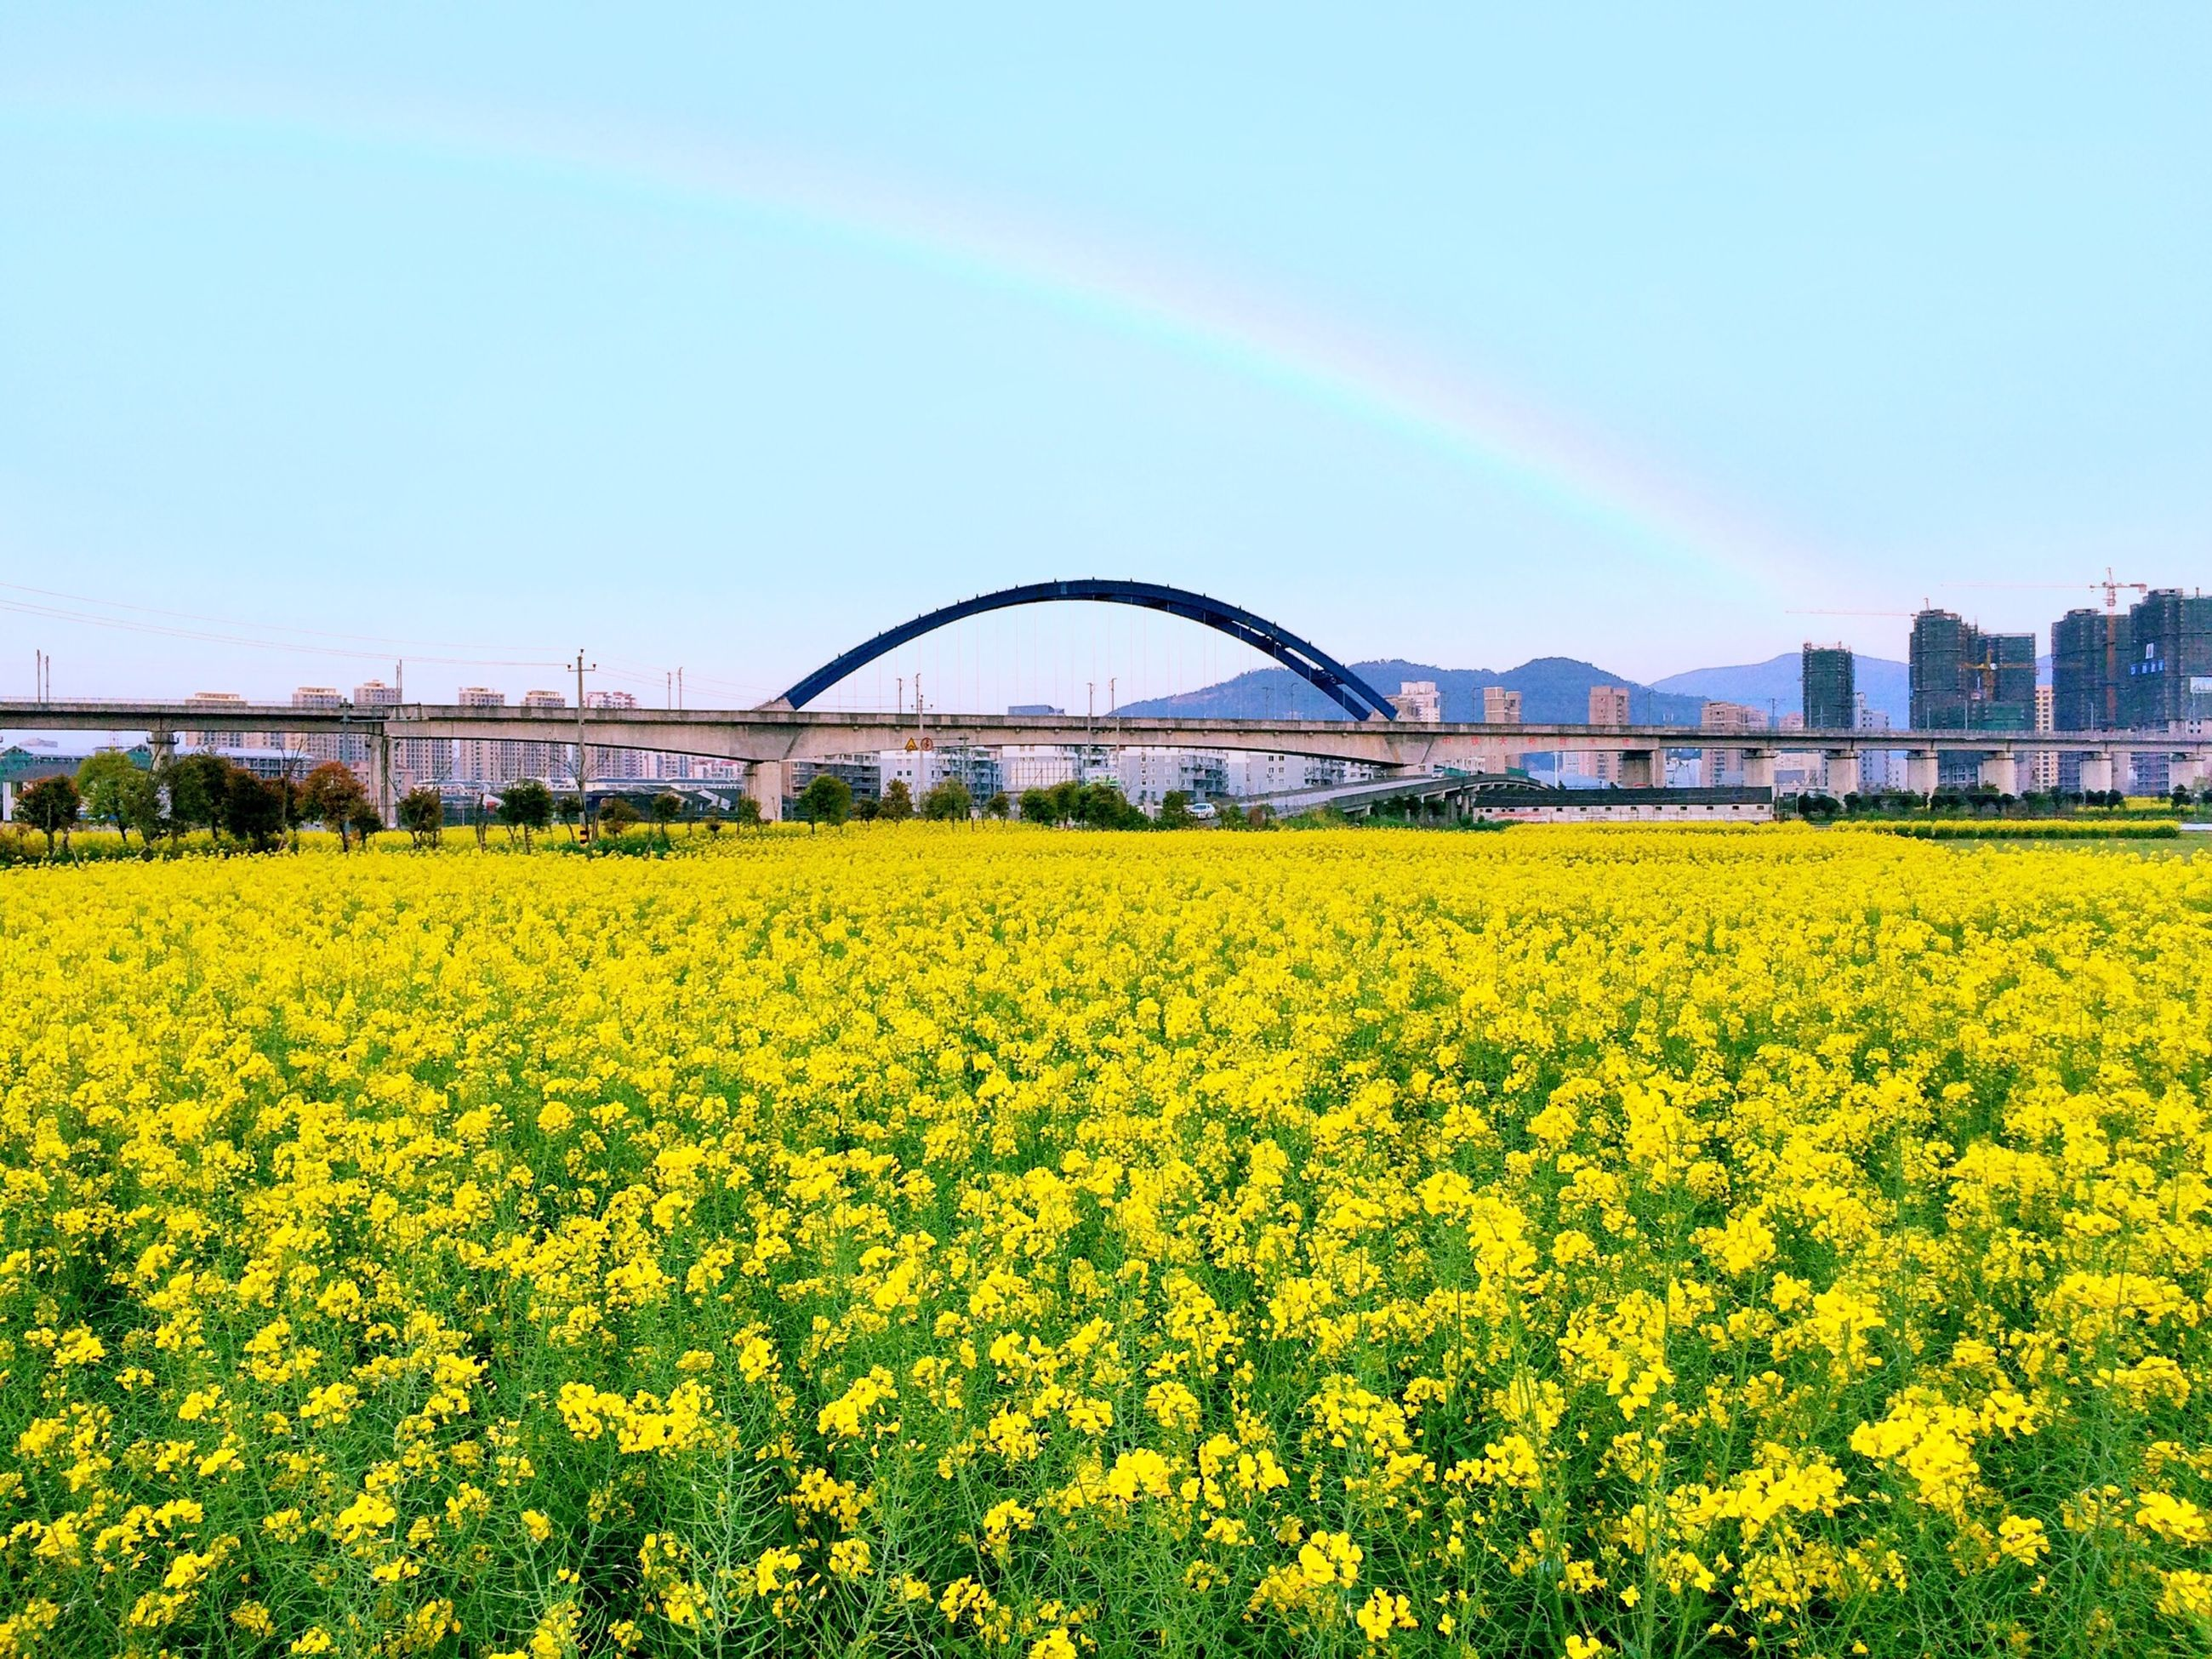 yellow, flower, clear sky, field, growth, freshness, rural scene, agriculture, architecture, copy space, beauty in nature, built structure, nature, fragility, oilseed rape, landscape, plant, abundance, sky, tranquil scene